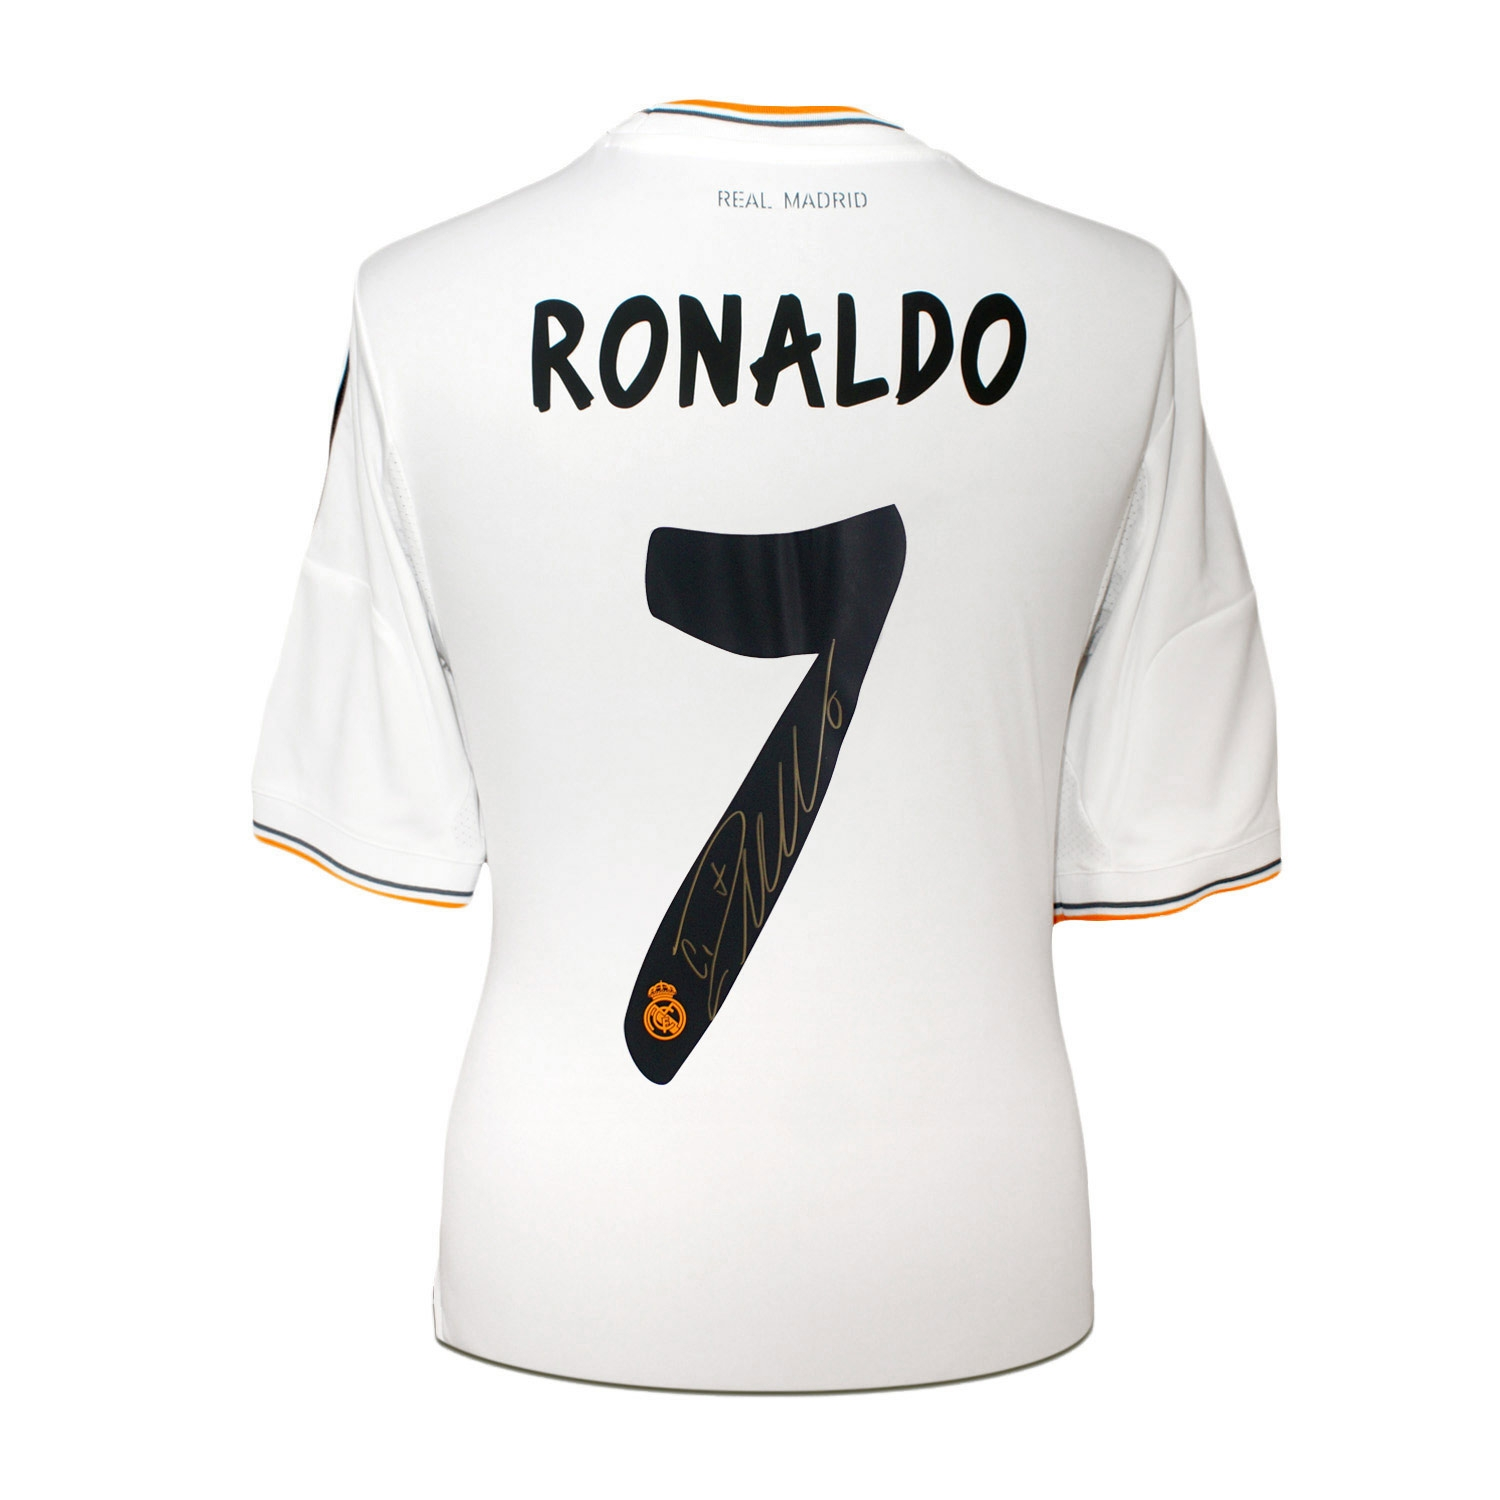 best website d19c5 82c55 Details about Cristiano Ronaldo Signed Real Madrid Football Shirt 2013 |  Soccer Memorabilia